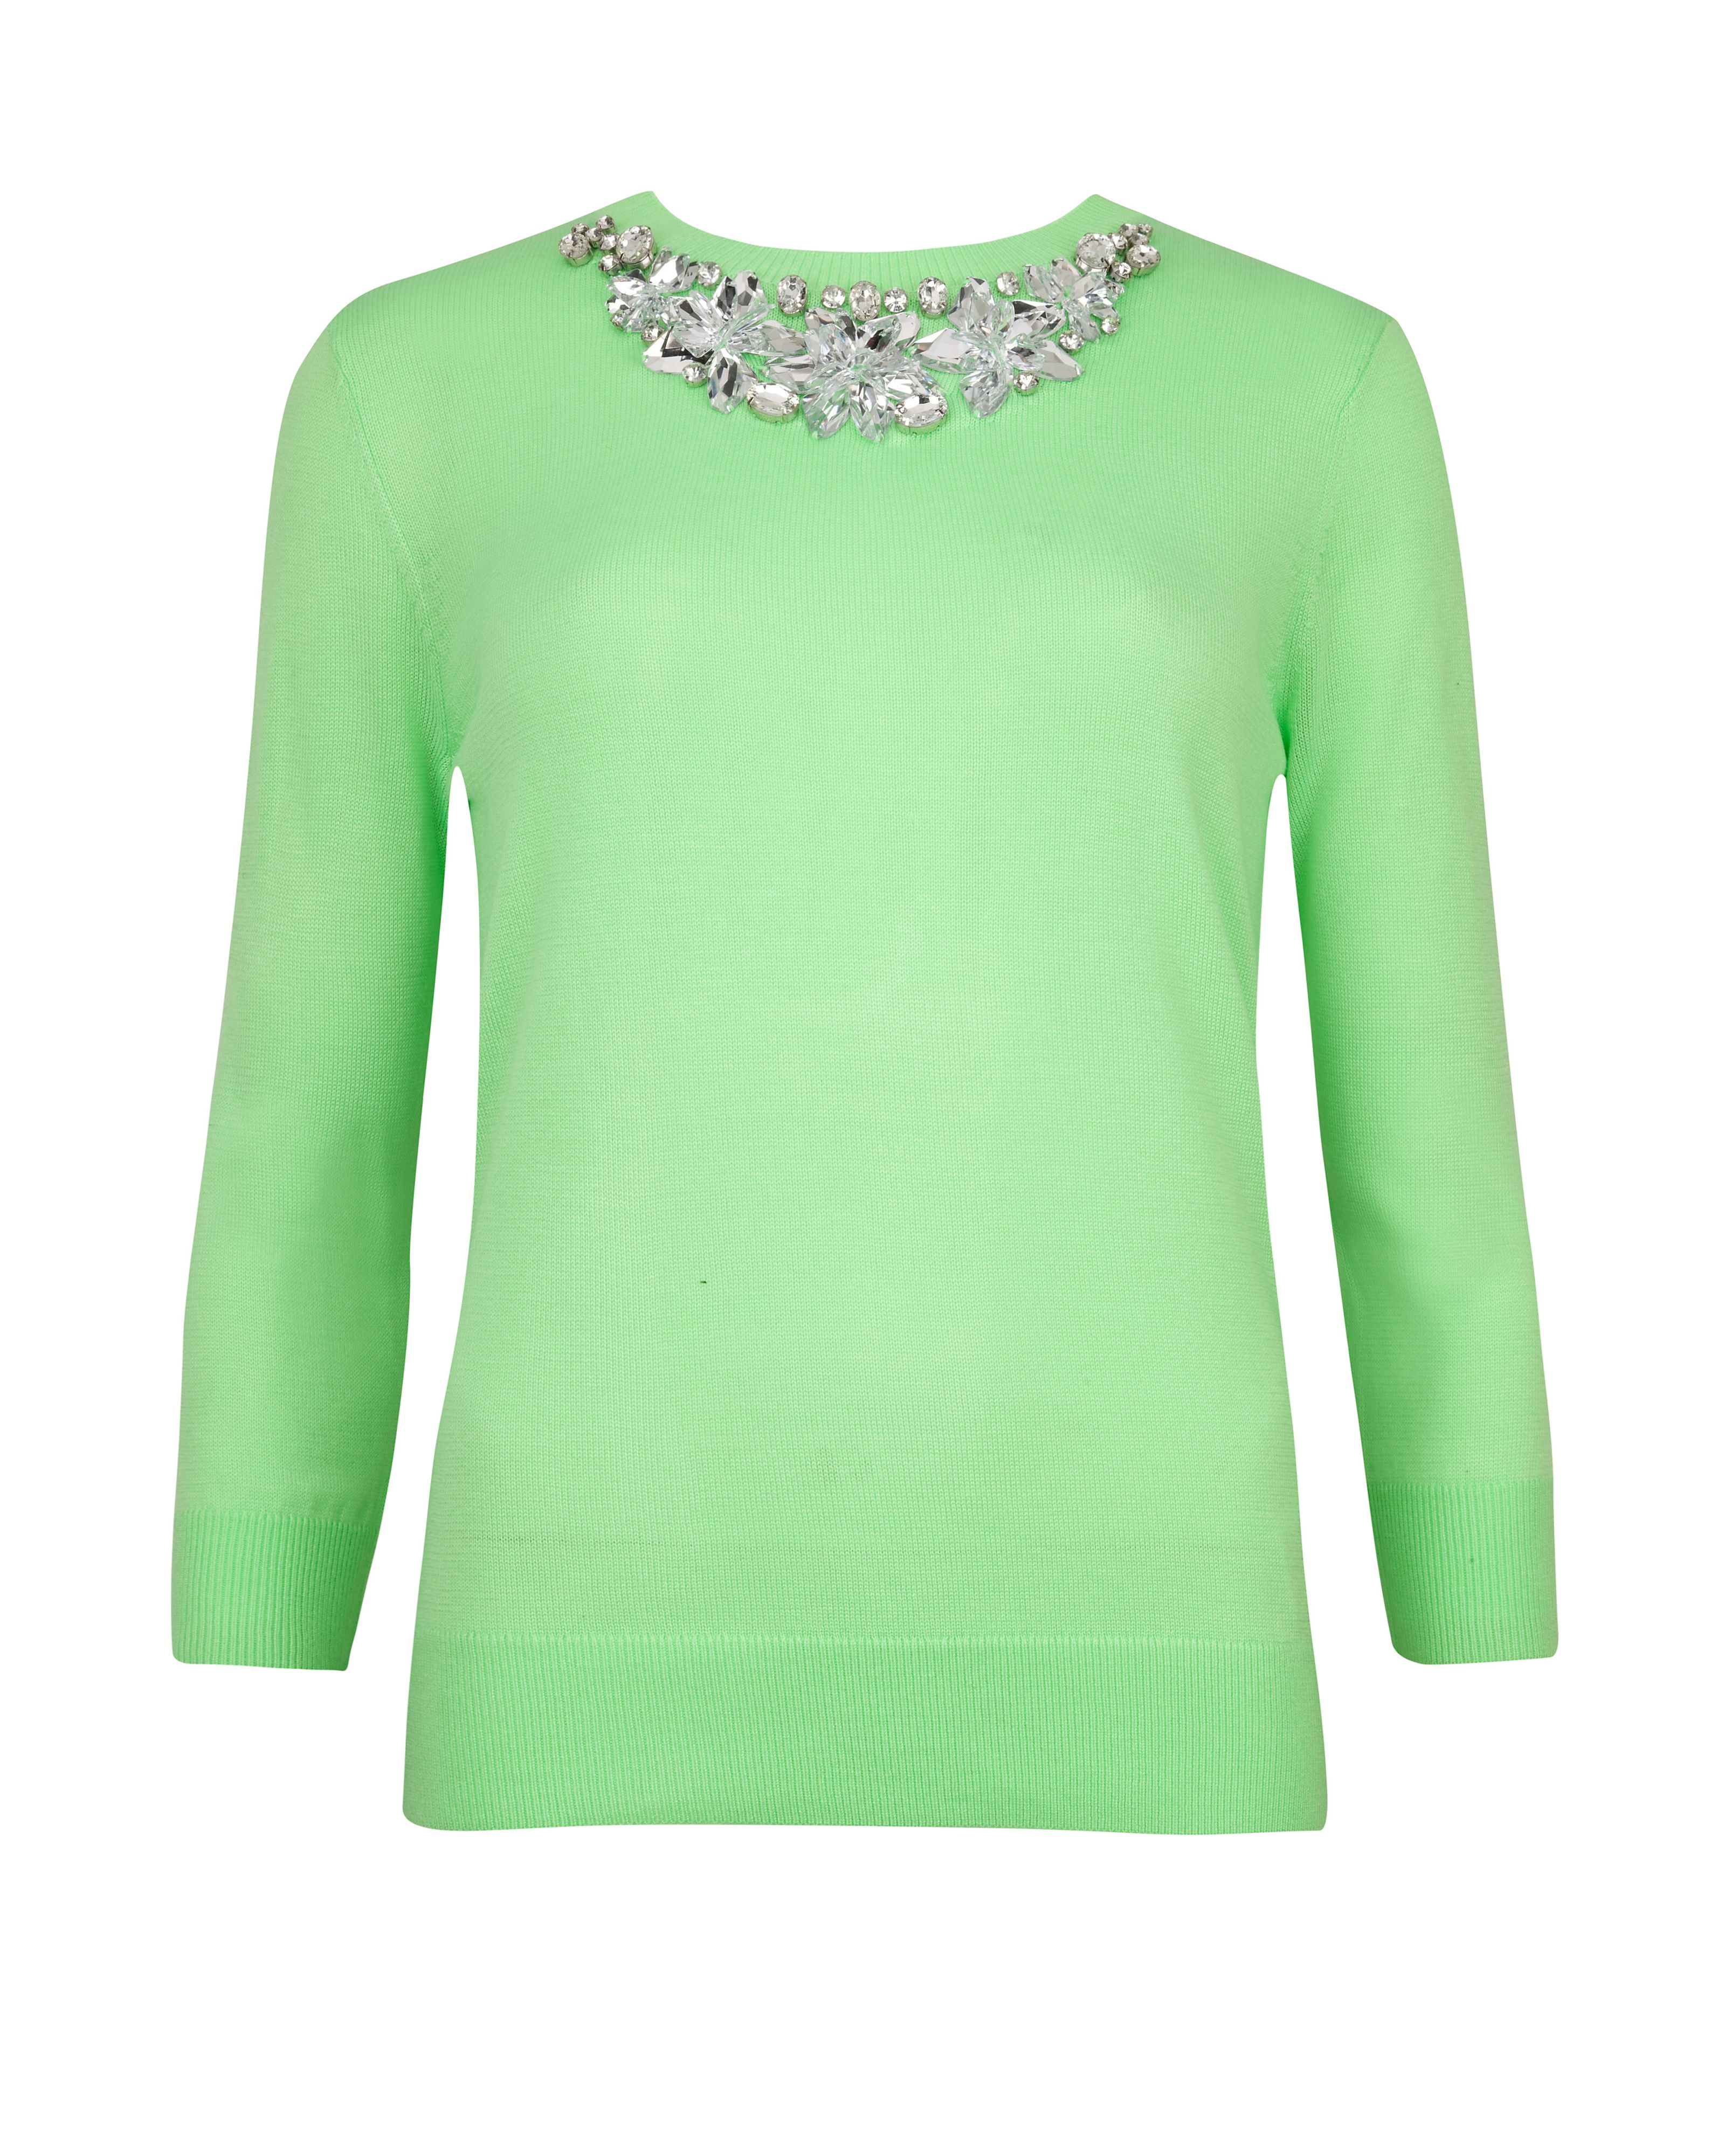 Tashca neon sweater